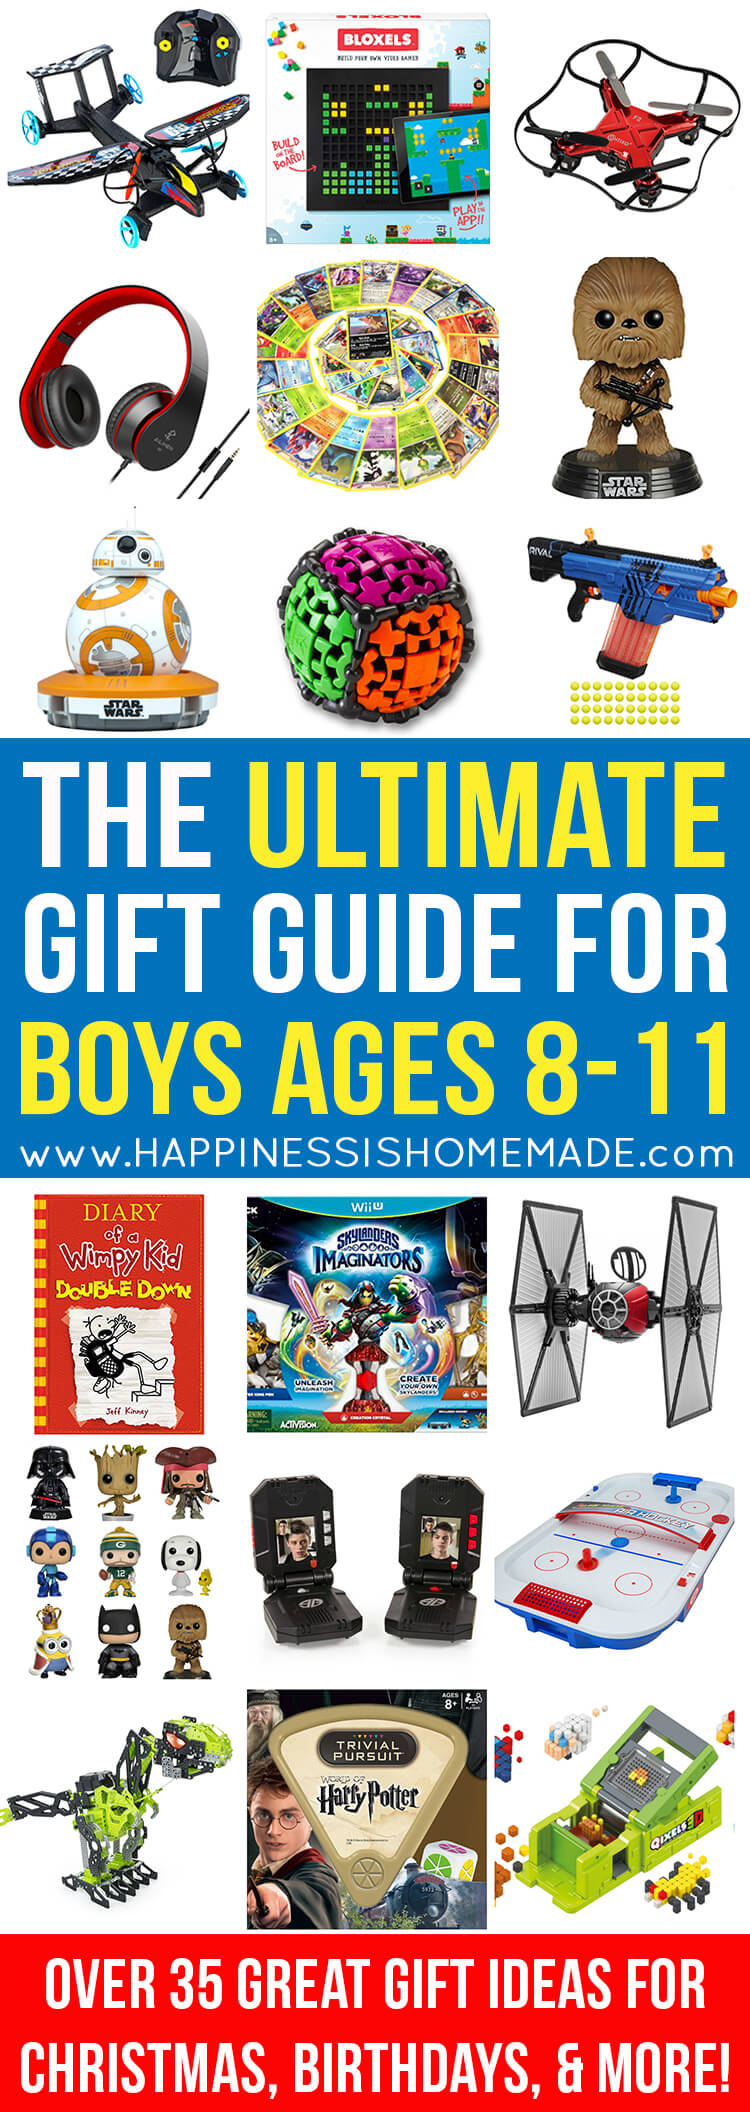 Boys Toys For Age 11 13 : The best gift ideas for boys ages happiness is homemade